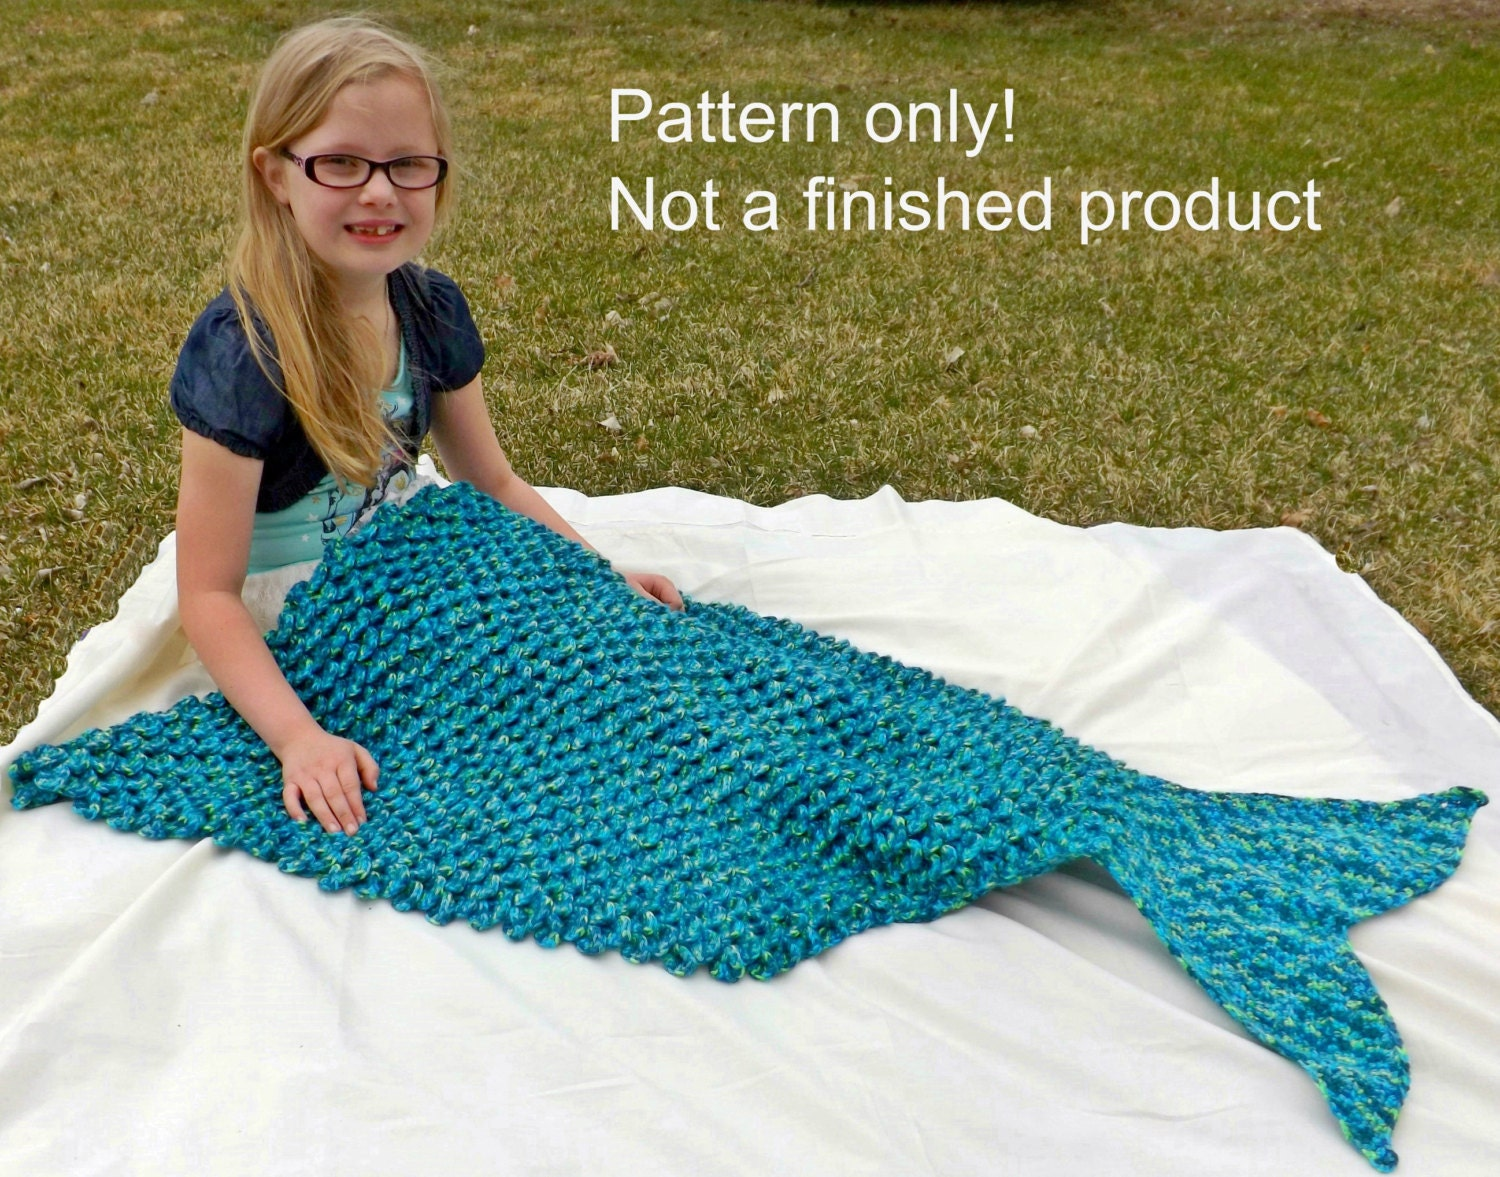 Crochet Patterns Mermaid Tail Blanket : Mermaid Tail Blanket Crochet Pattern Adult by JensTangledThreads